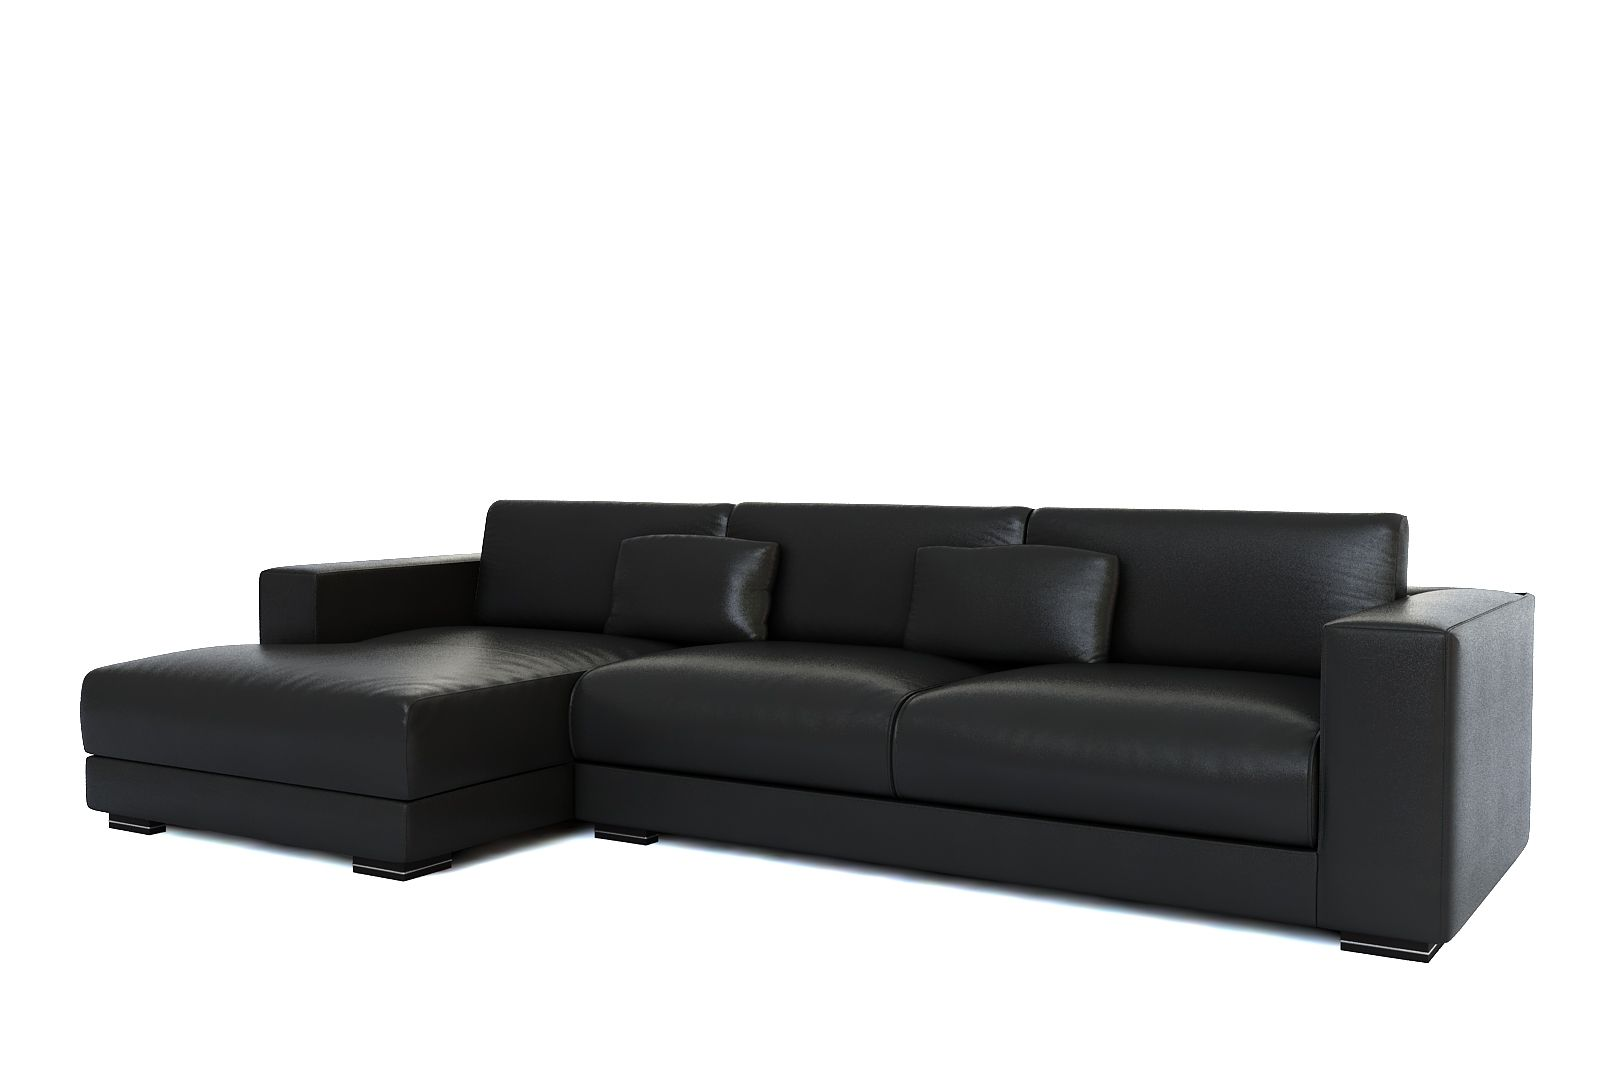 Gentil BLACK Leather Couch   Google Zoeken